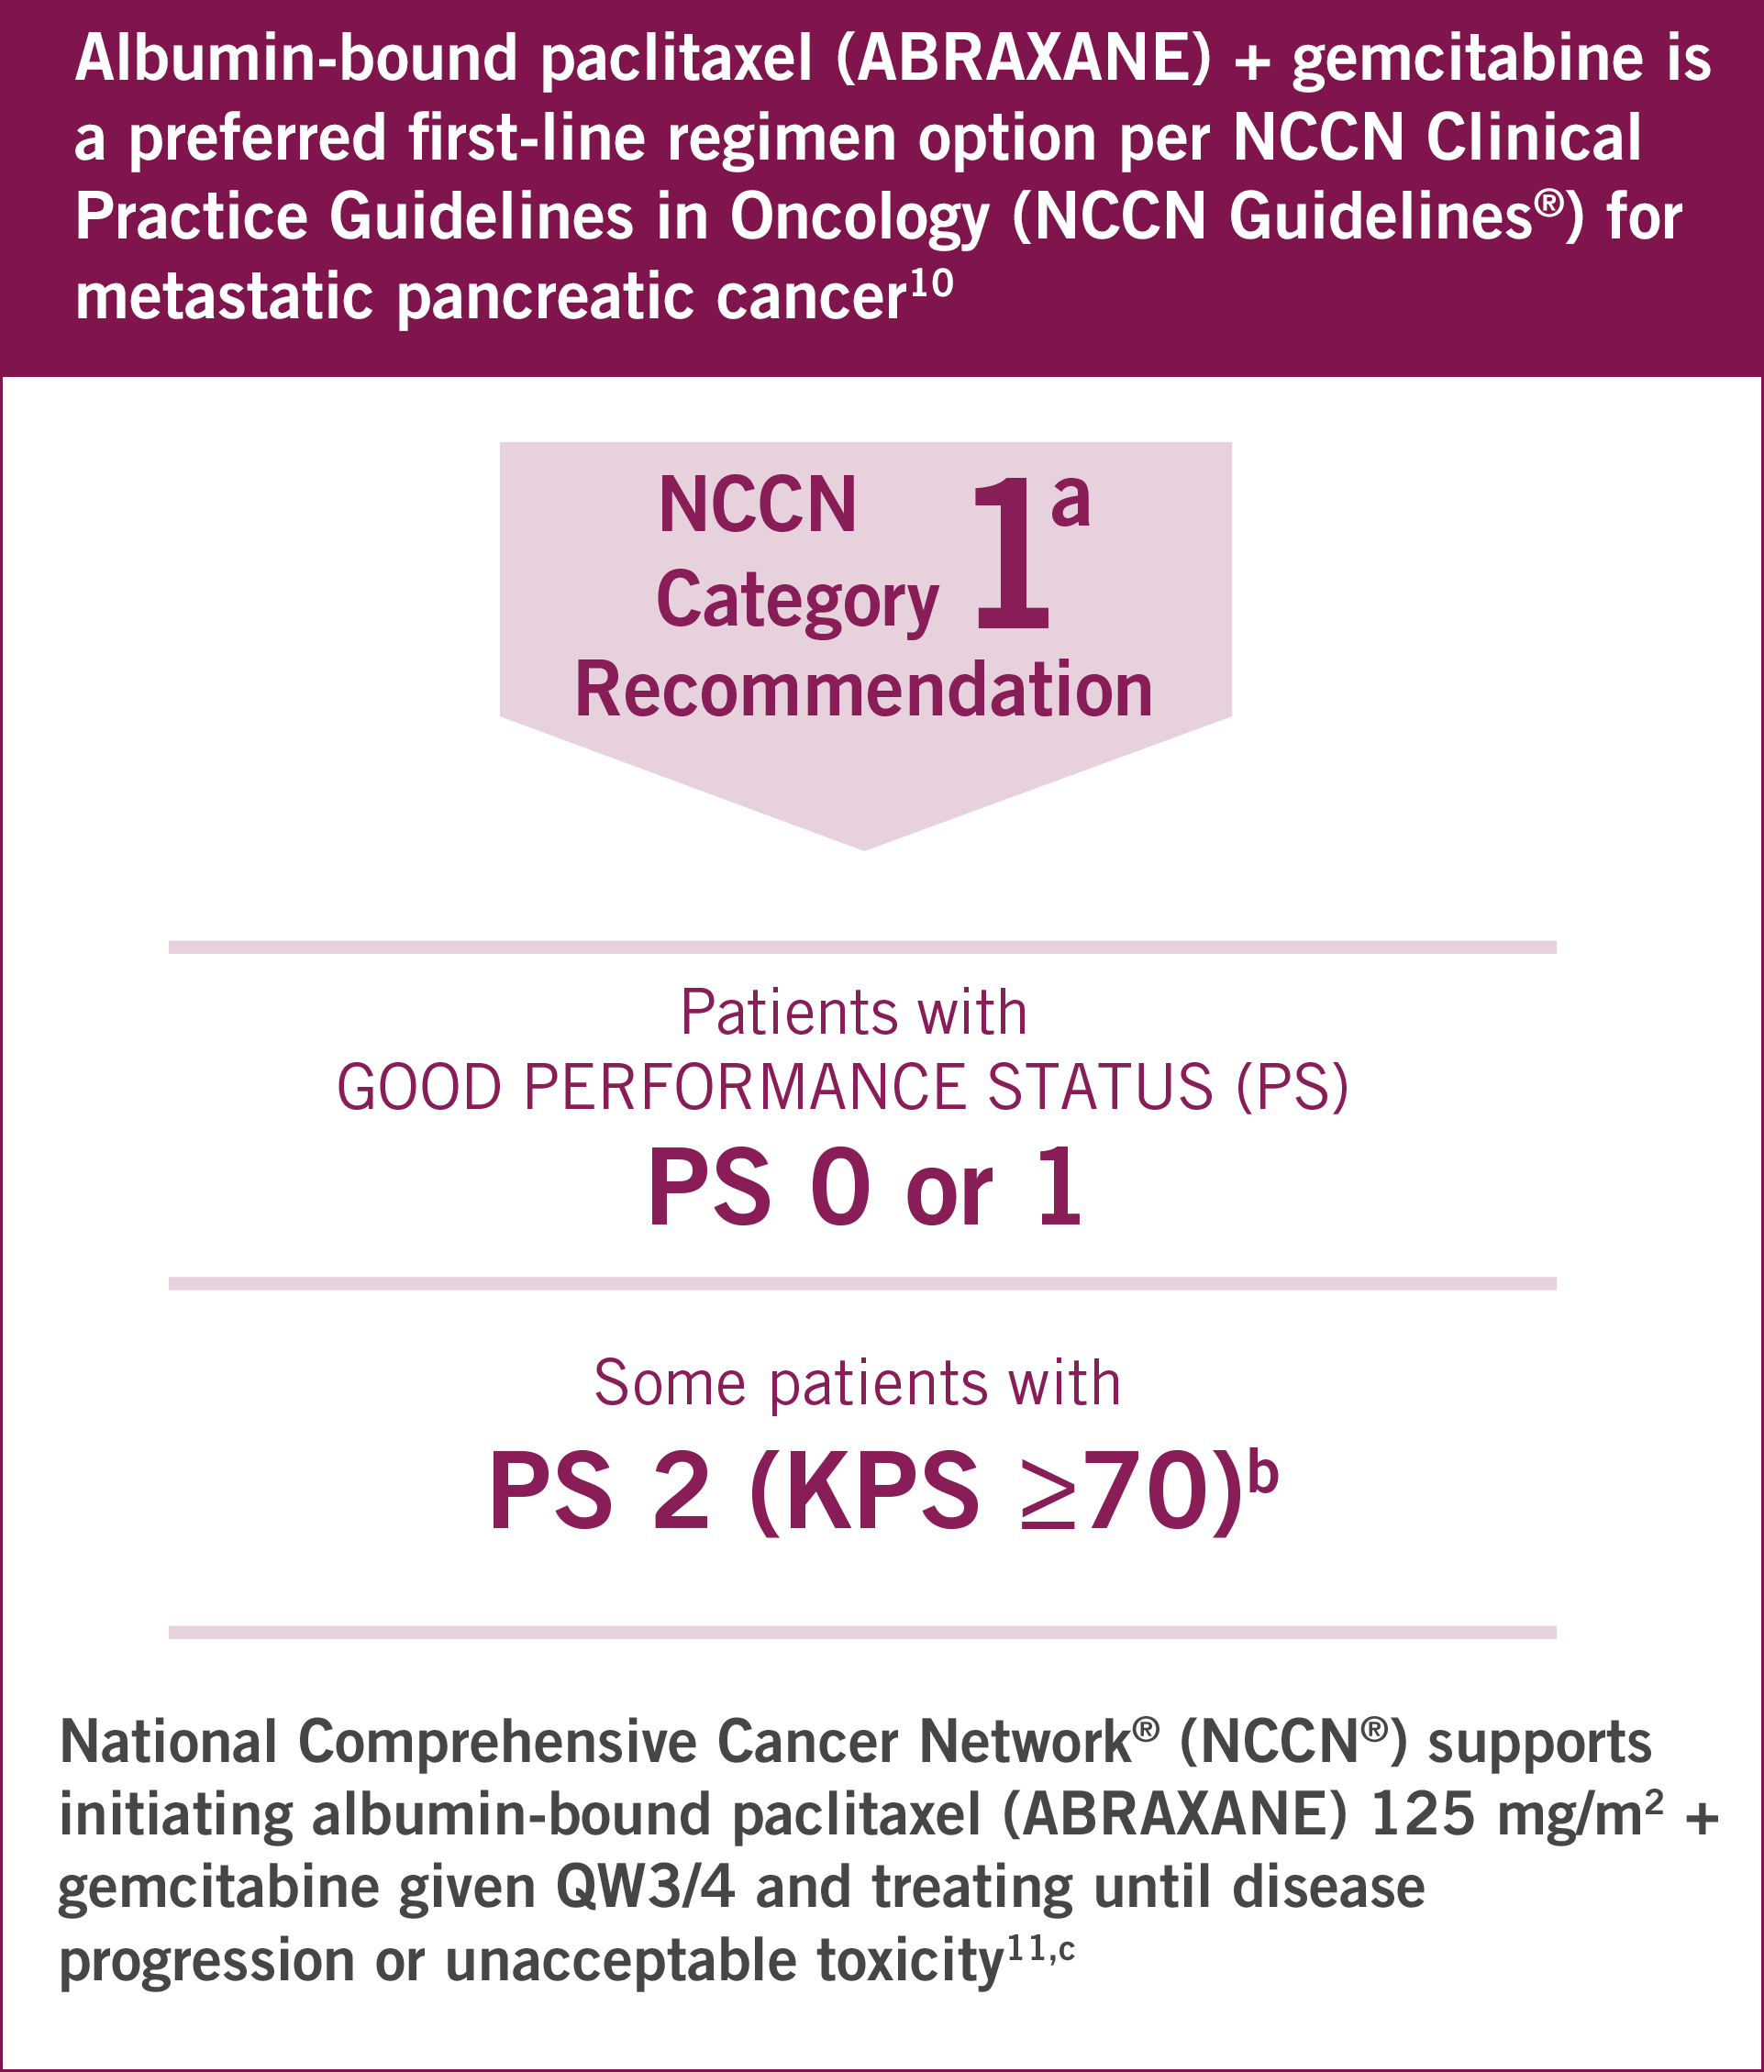 Albumin-bound paclitaxel (ABRAXANE) + gemcitabine is a preferred 1L regimen per NCCN Clinical Practice Guidelines in Oncology (NCCN Guidelines®) for metastatic pancreatic cancer in patients with good performance status PS 0 or 1 and in some patients with PS 2 (KPS ≥70; NCCN supports initiating albumin-bound paclitaxel (ABRAXANE 125 mg/m2 + gemcitabine given QW3/4 and treating until disease progression or unacceptable toxicity | Dose reductions or discontinuation may be needed based on severe hematologic, neurologic, cutaneous, or gastrointestinal toxicity